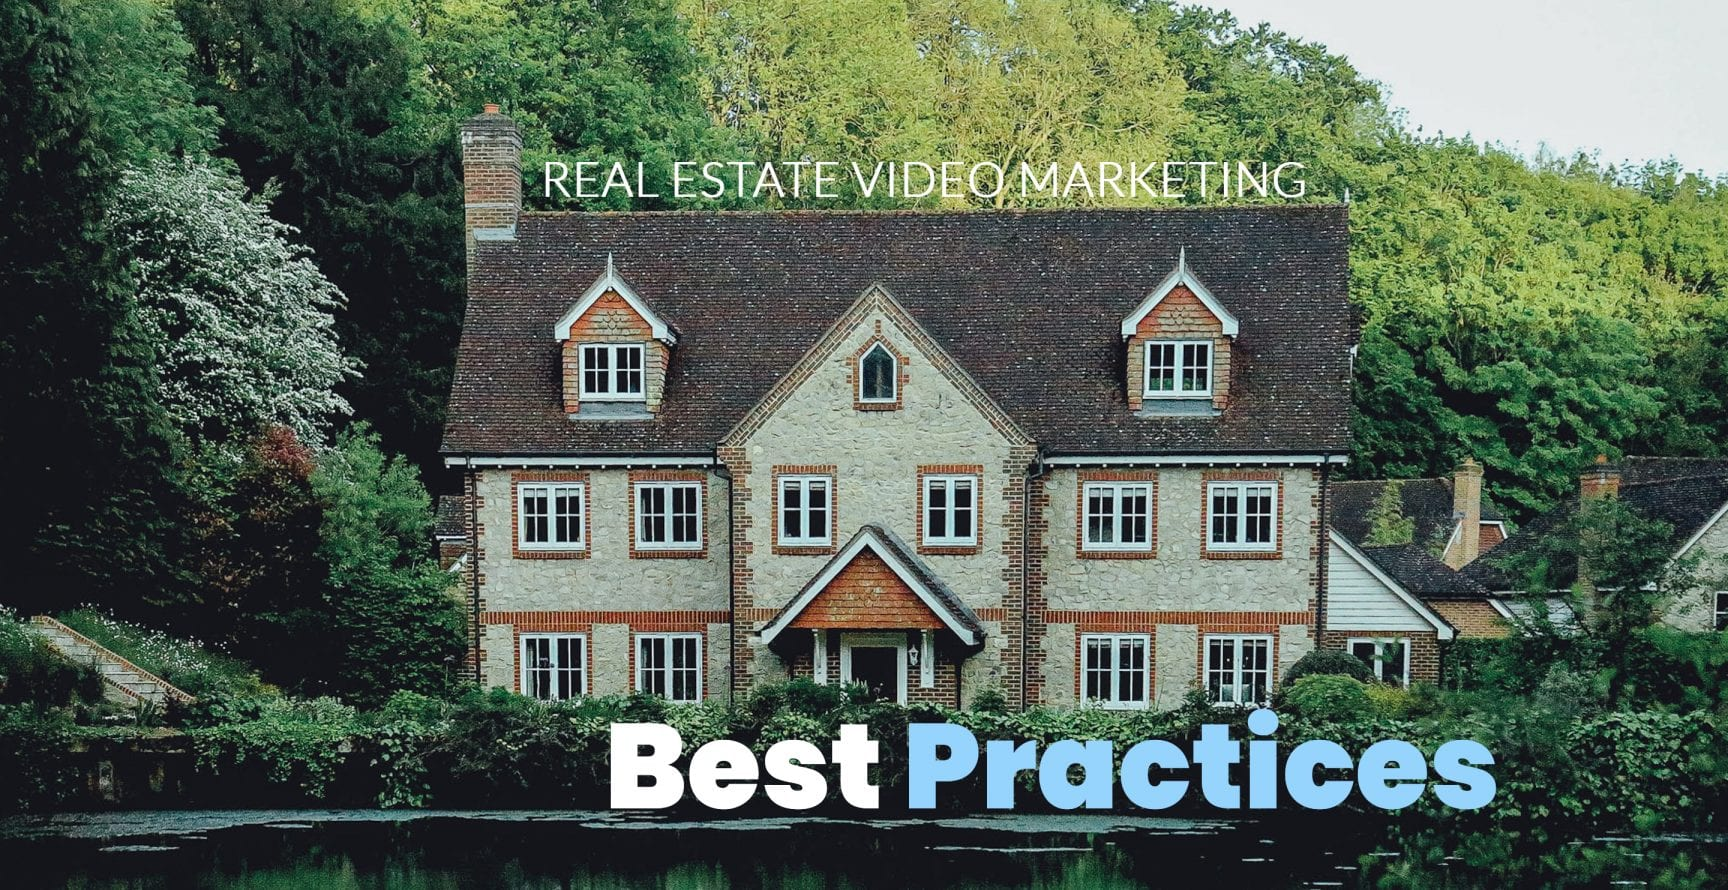 Real Estate Video Marketing Best Practices - Country House